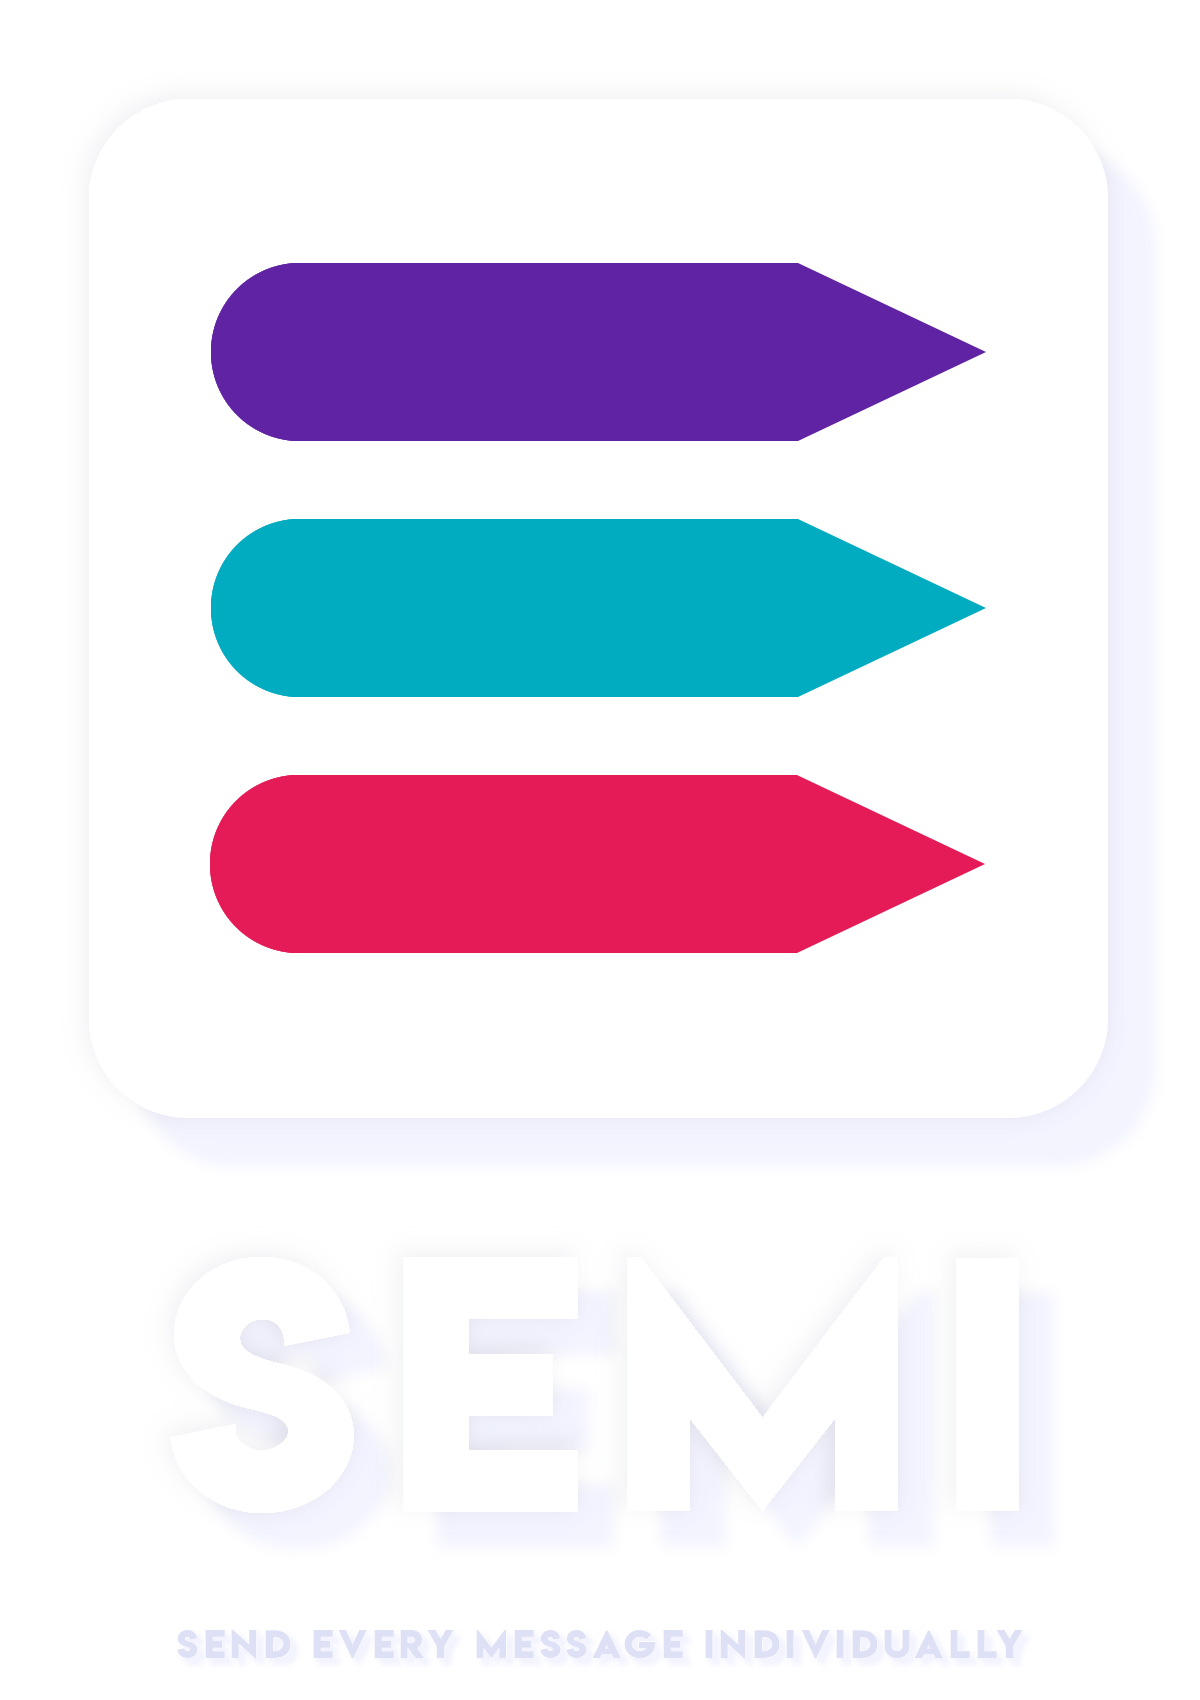 semiIconWithShadowText9.png